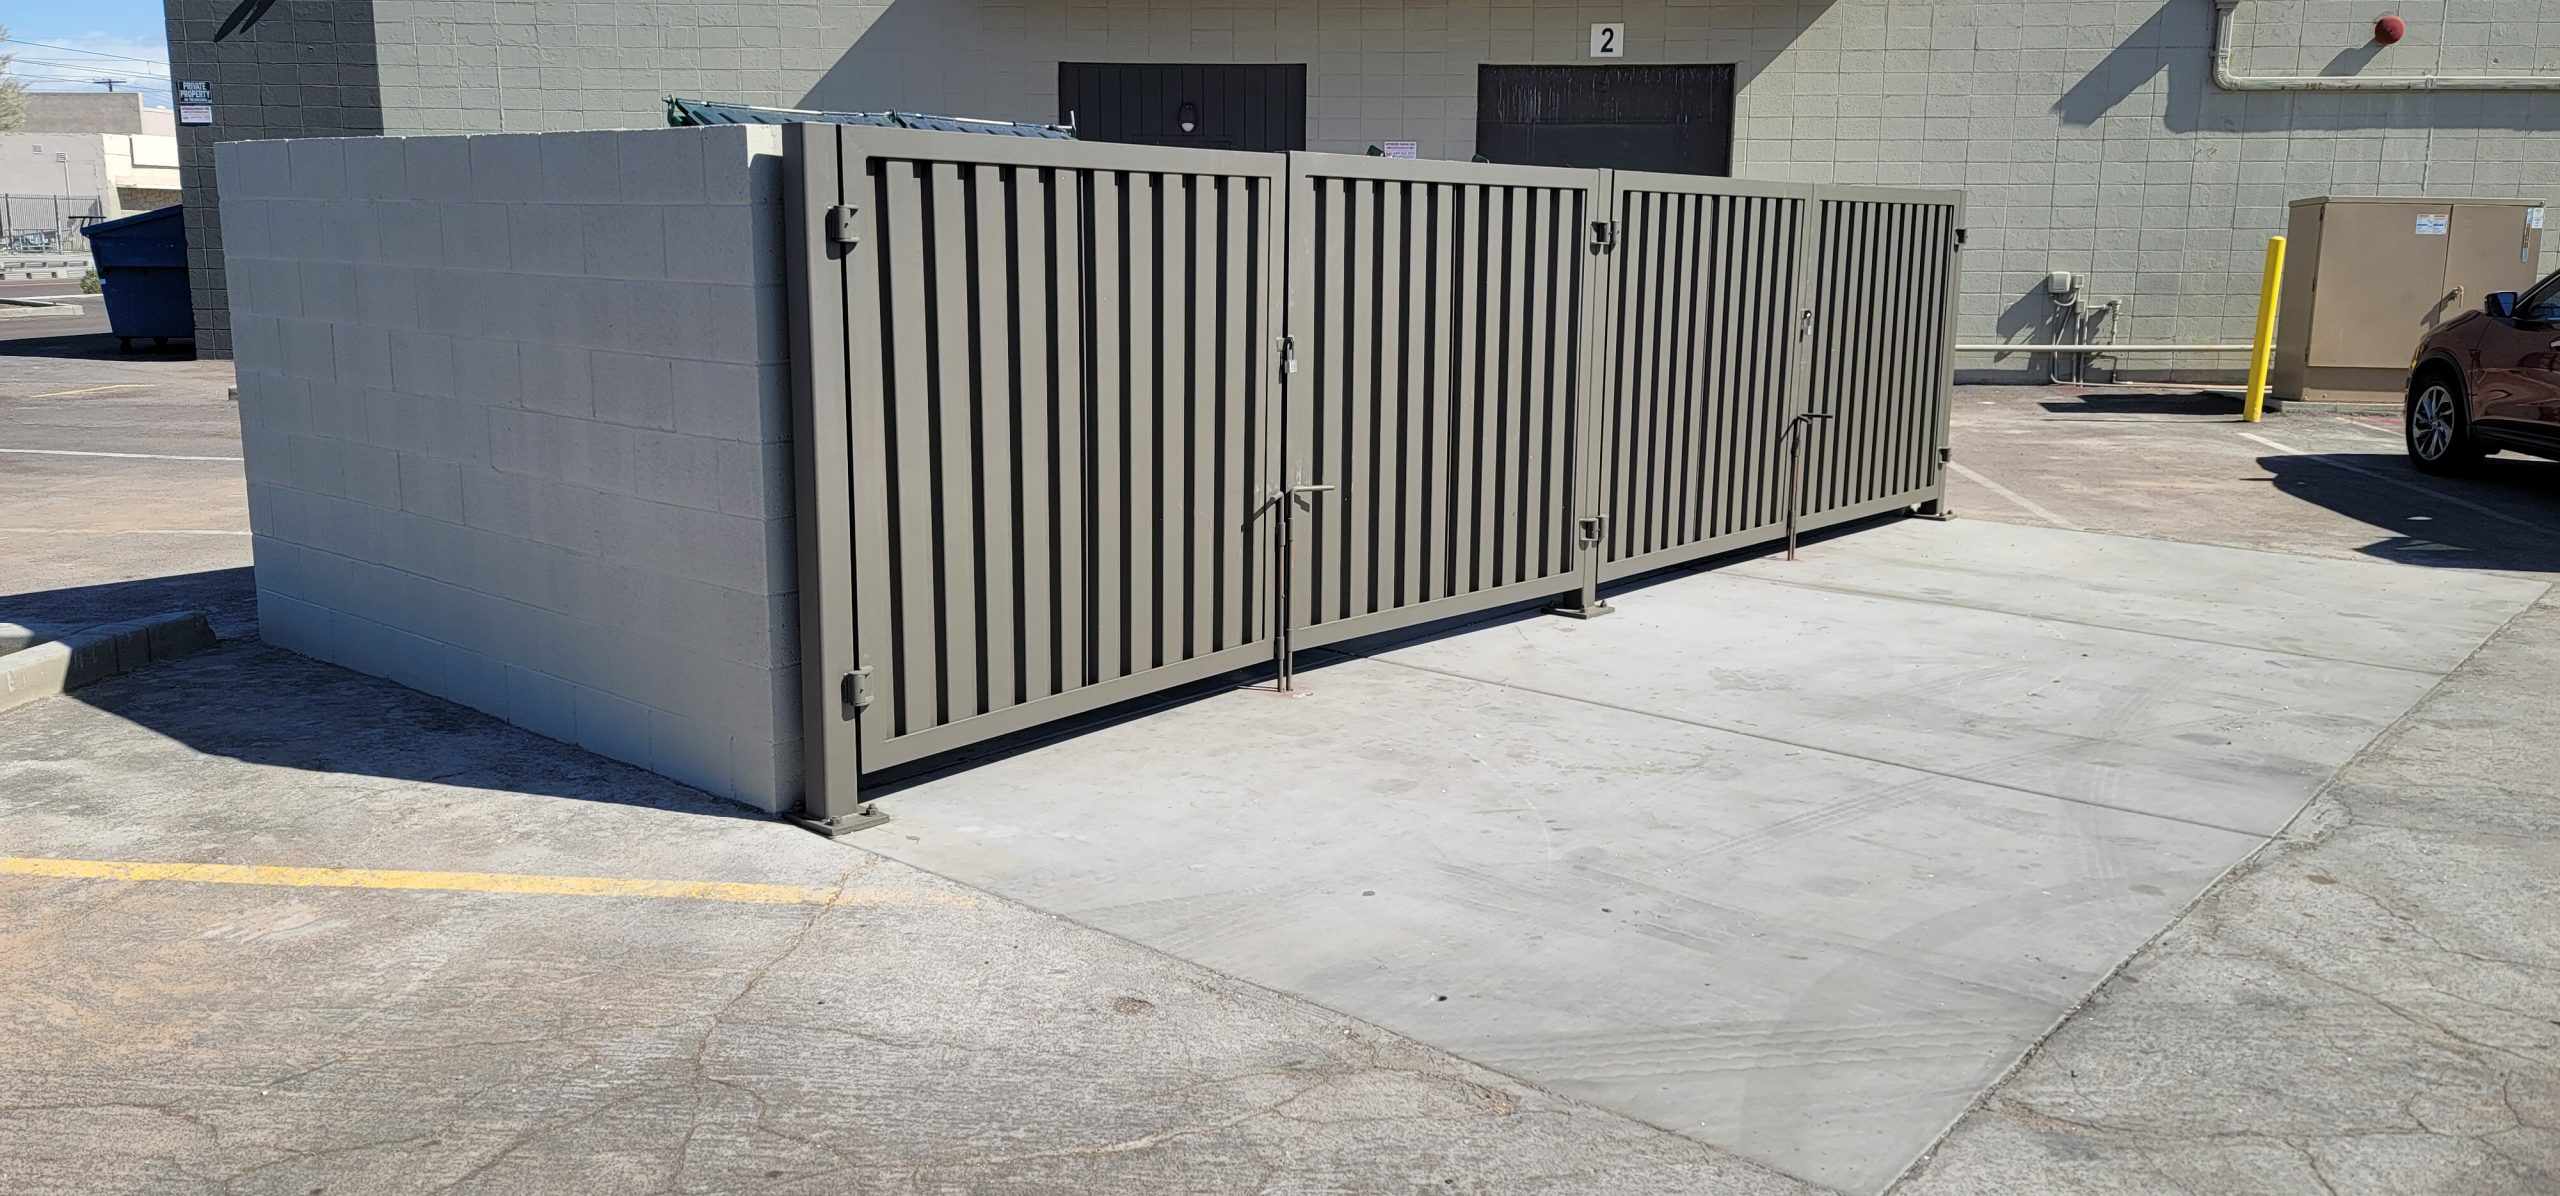 How Much Does It Cost to Build a Concrete Trash or Dumpster Enclosure in Phoenix, Arizona?